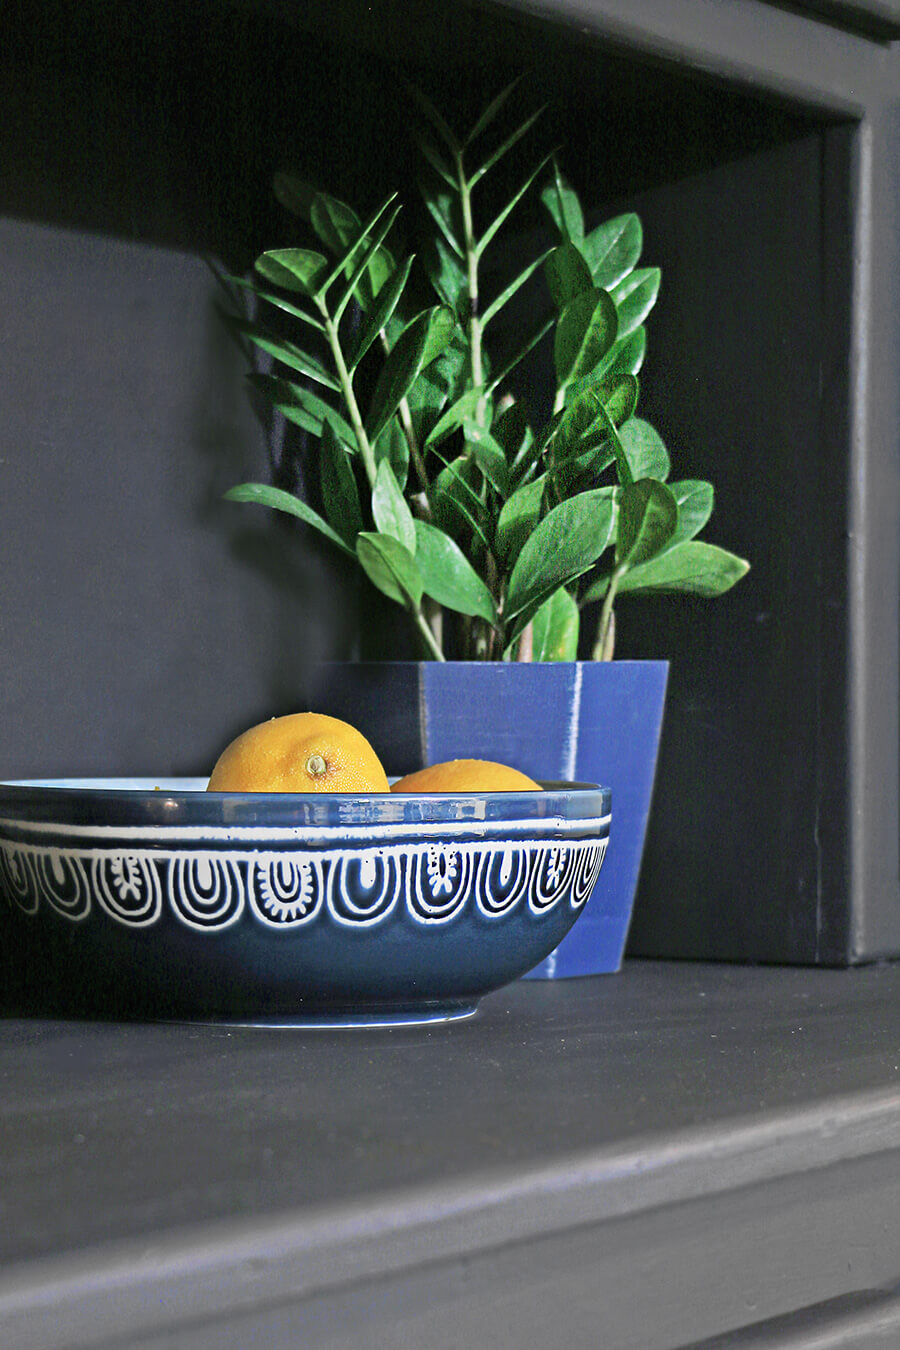 Teal bowl and houseplant